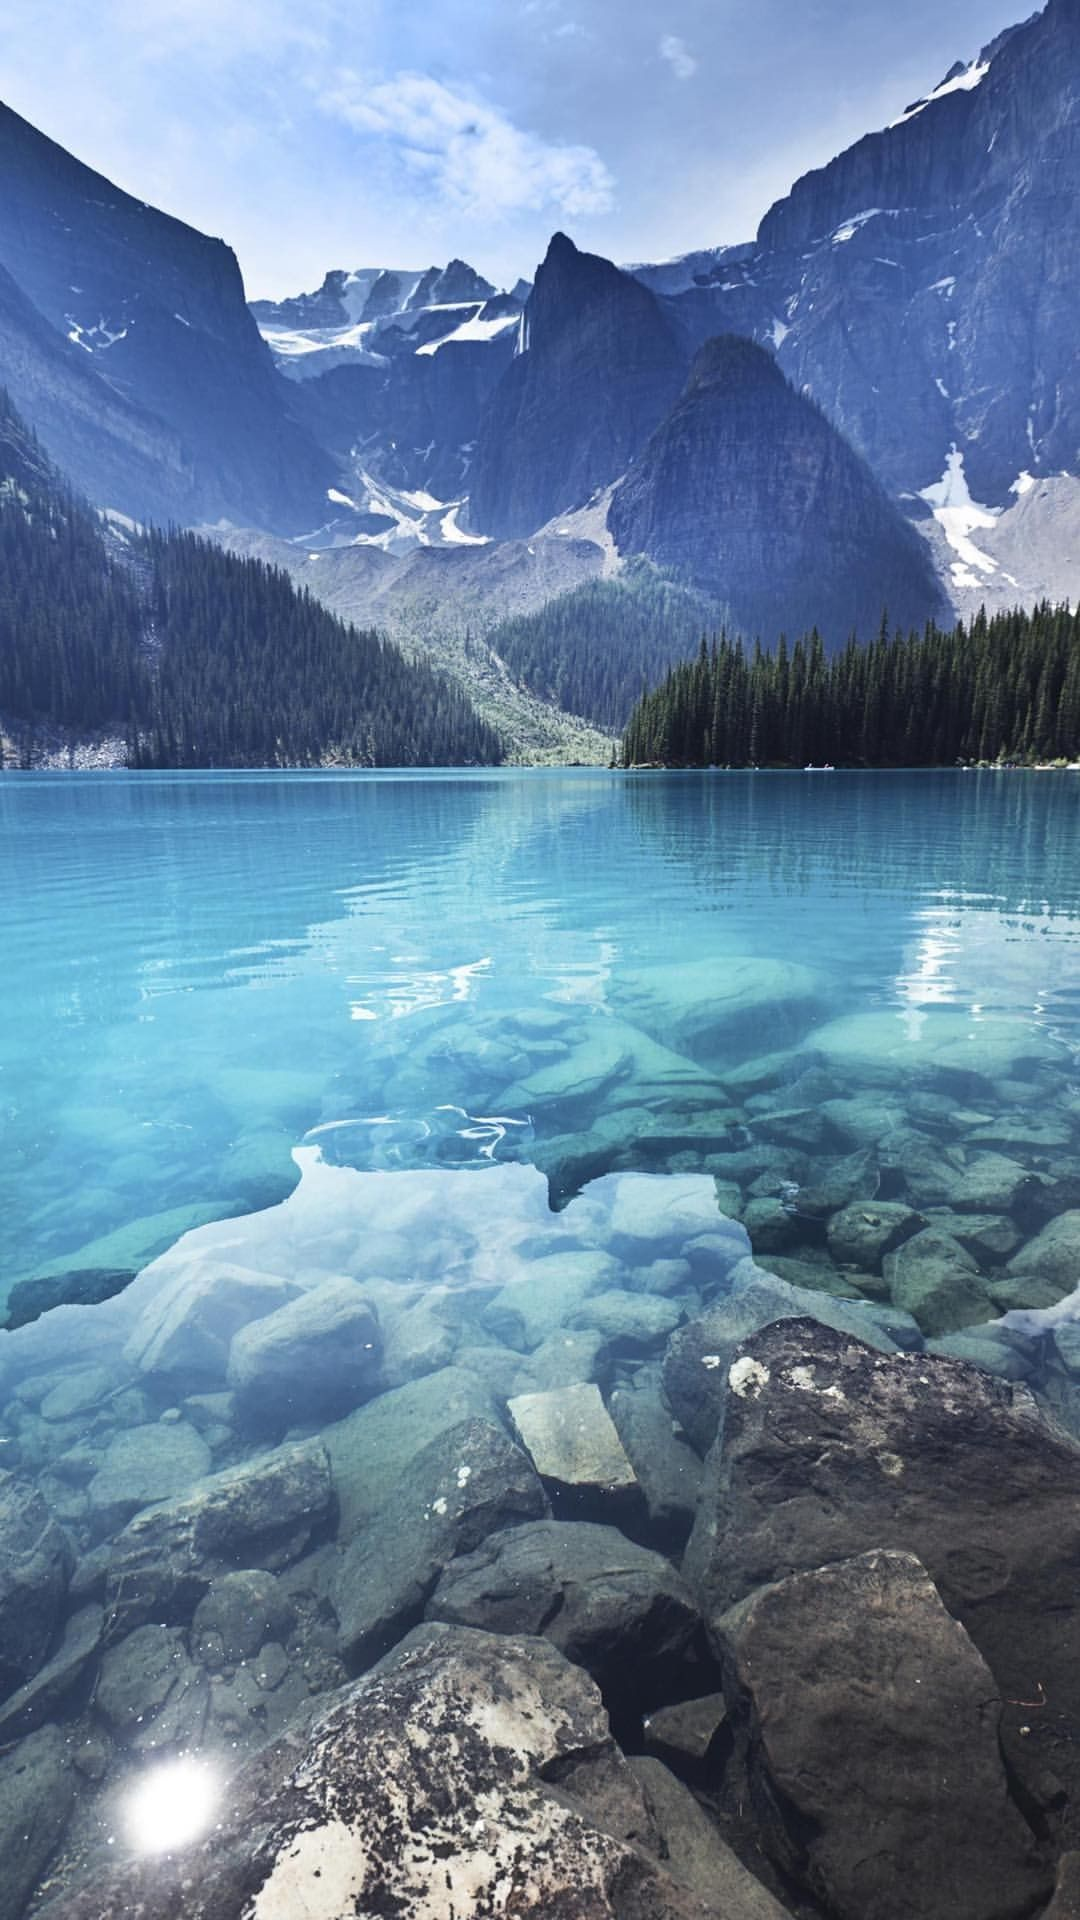 Nature Crystal Clear Water Of A Mountain Lake Calm And Peaceful Beautiful Landscapes Landscape Wallpaper Beautiful Nature